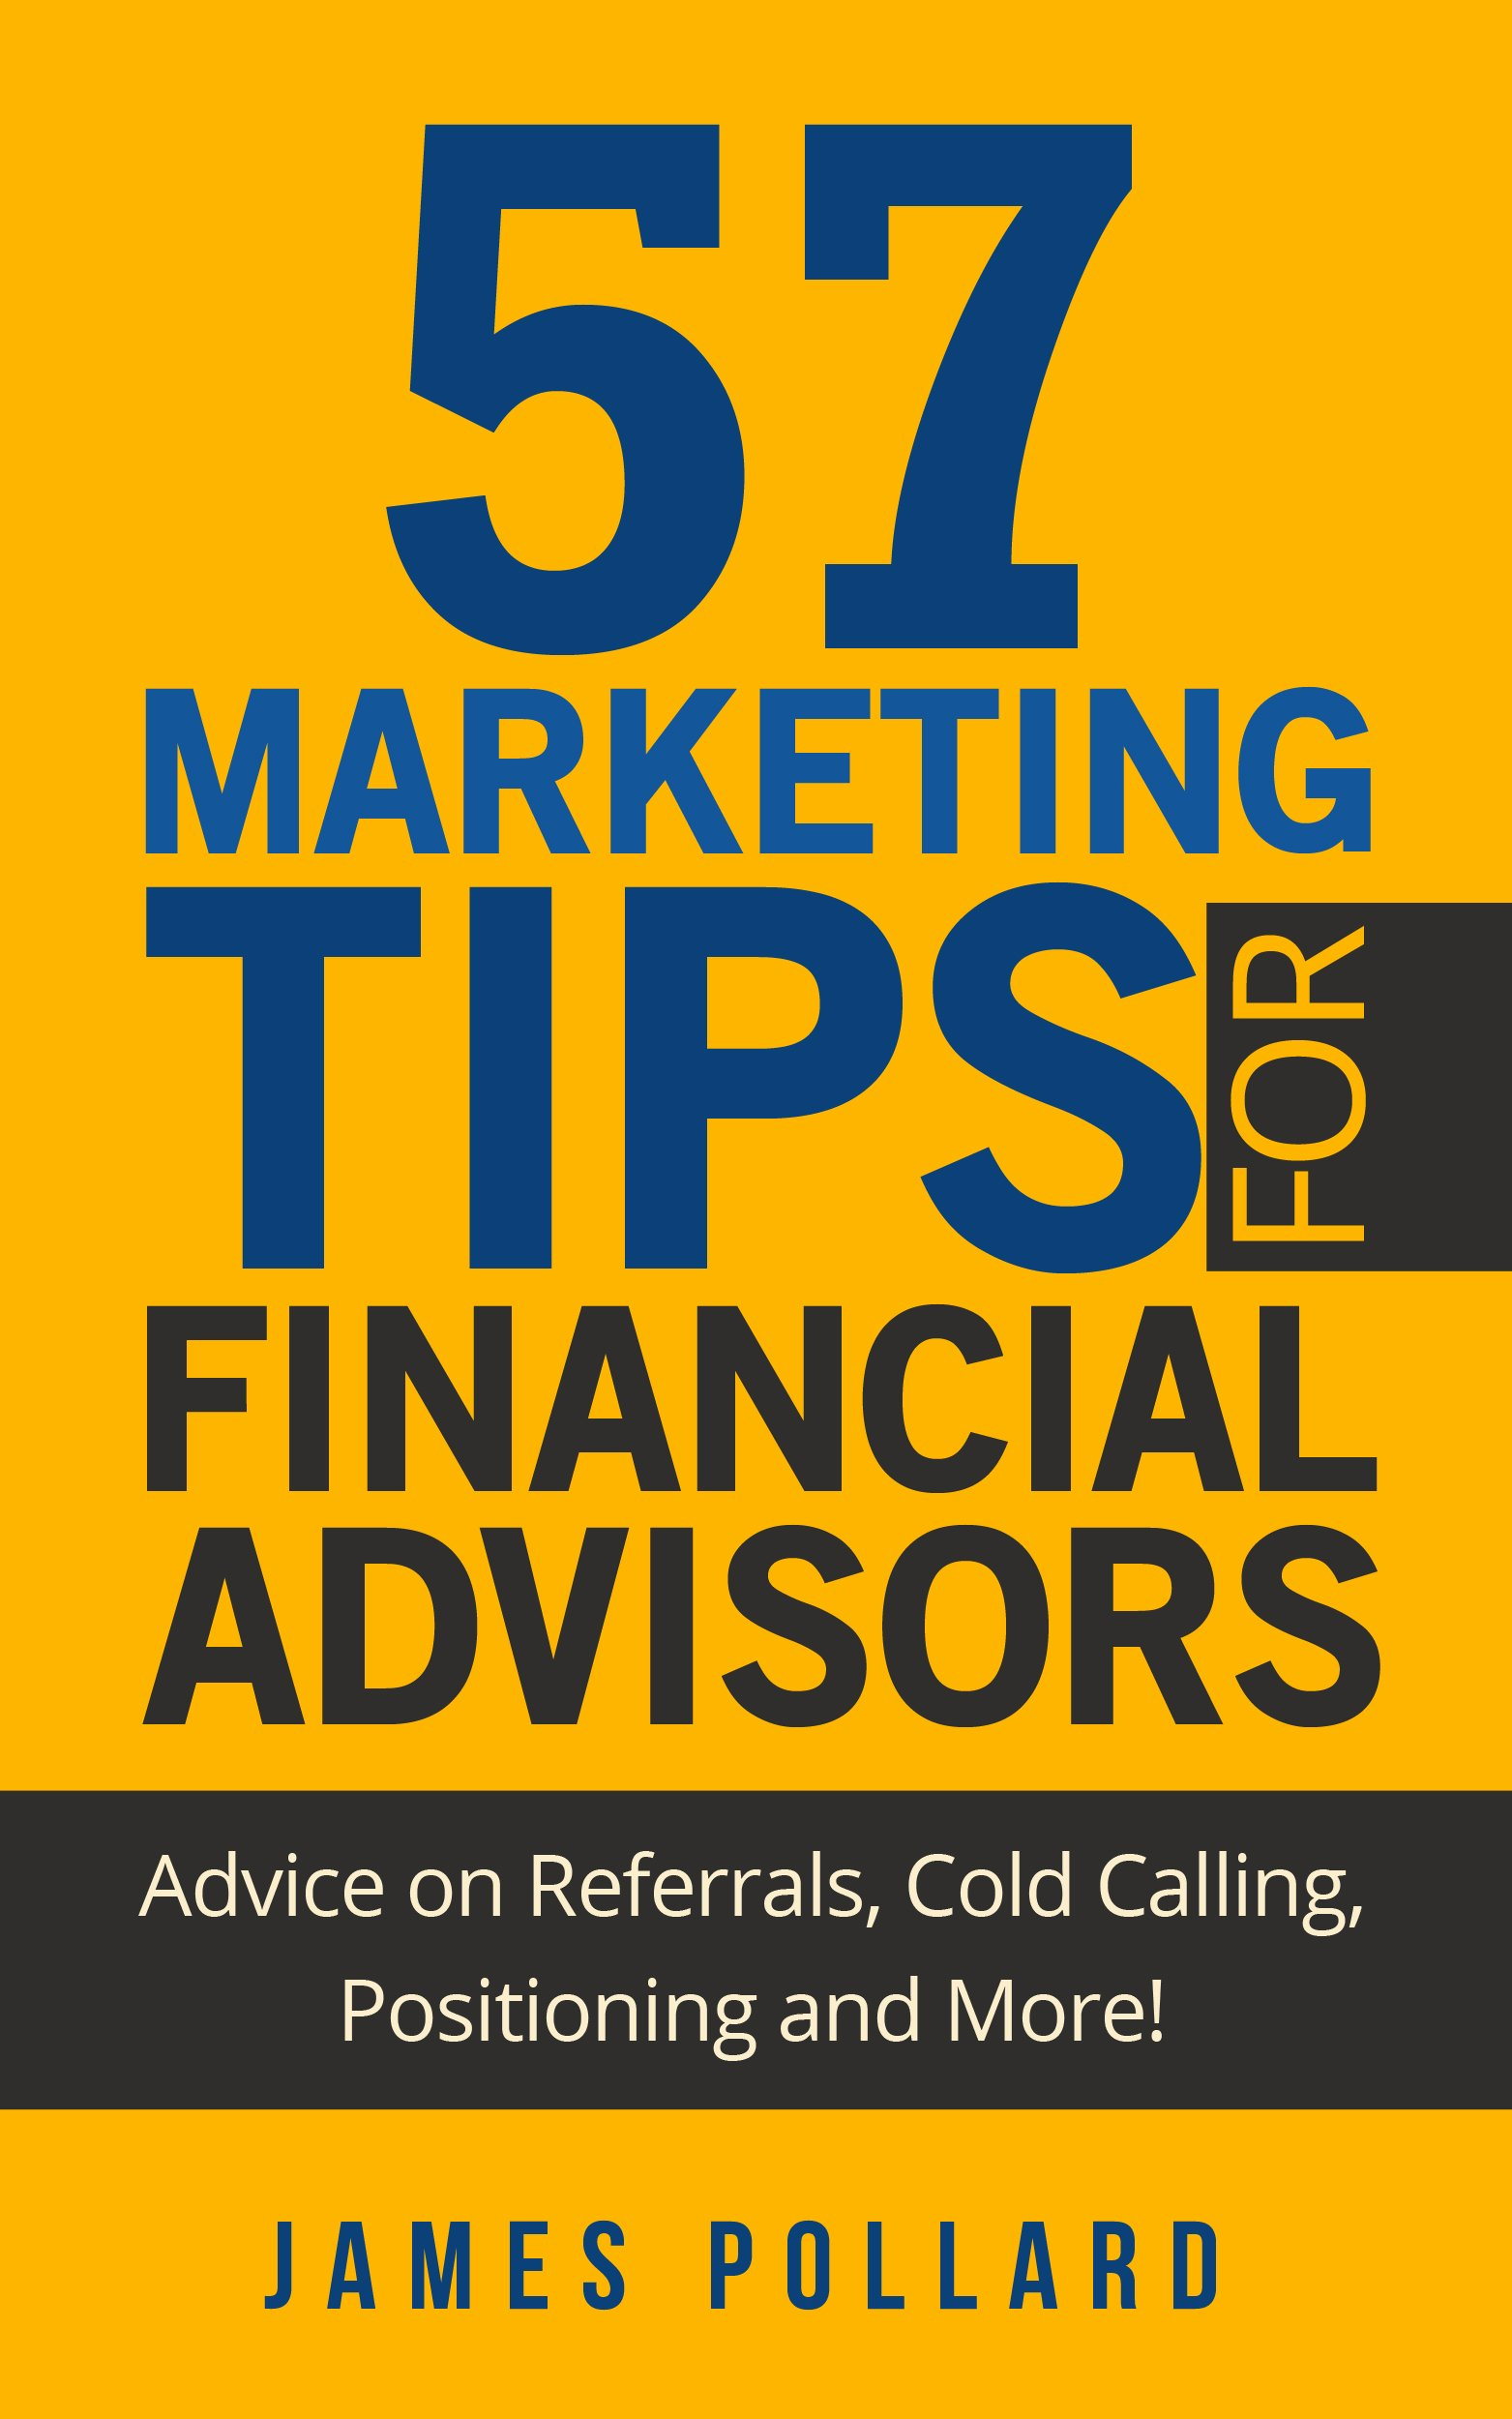 How To Become A Financial Advisor >> How To Become A Financial Advisor In 5 Not So Easy Steps